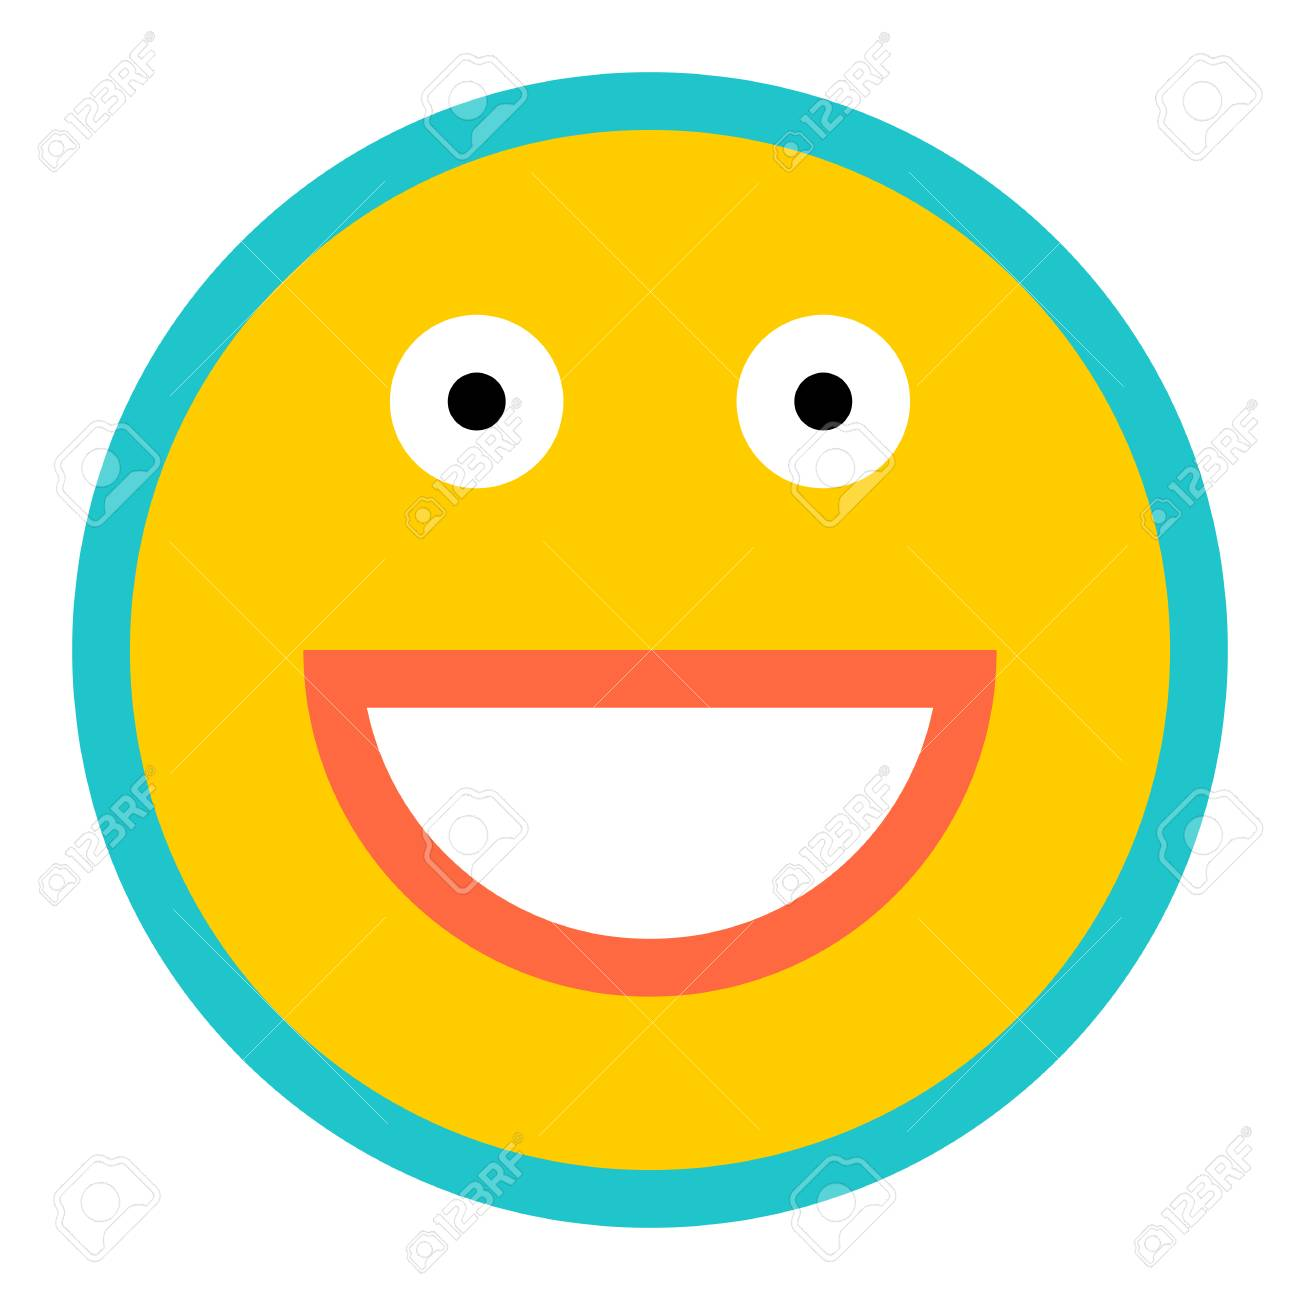 Use It In All Your Designs Smiley Happy Smiling Face Emoticon